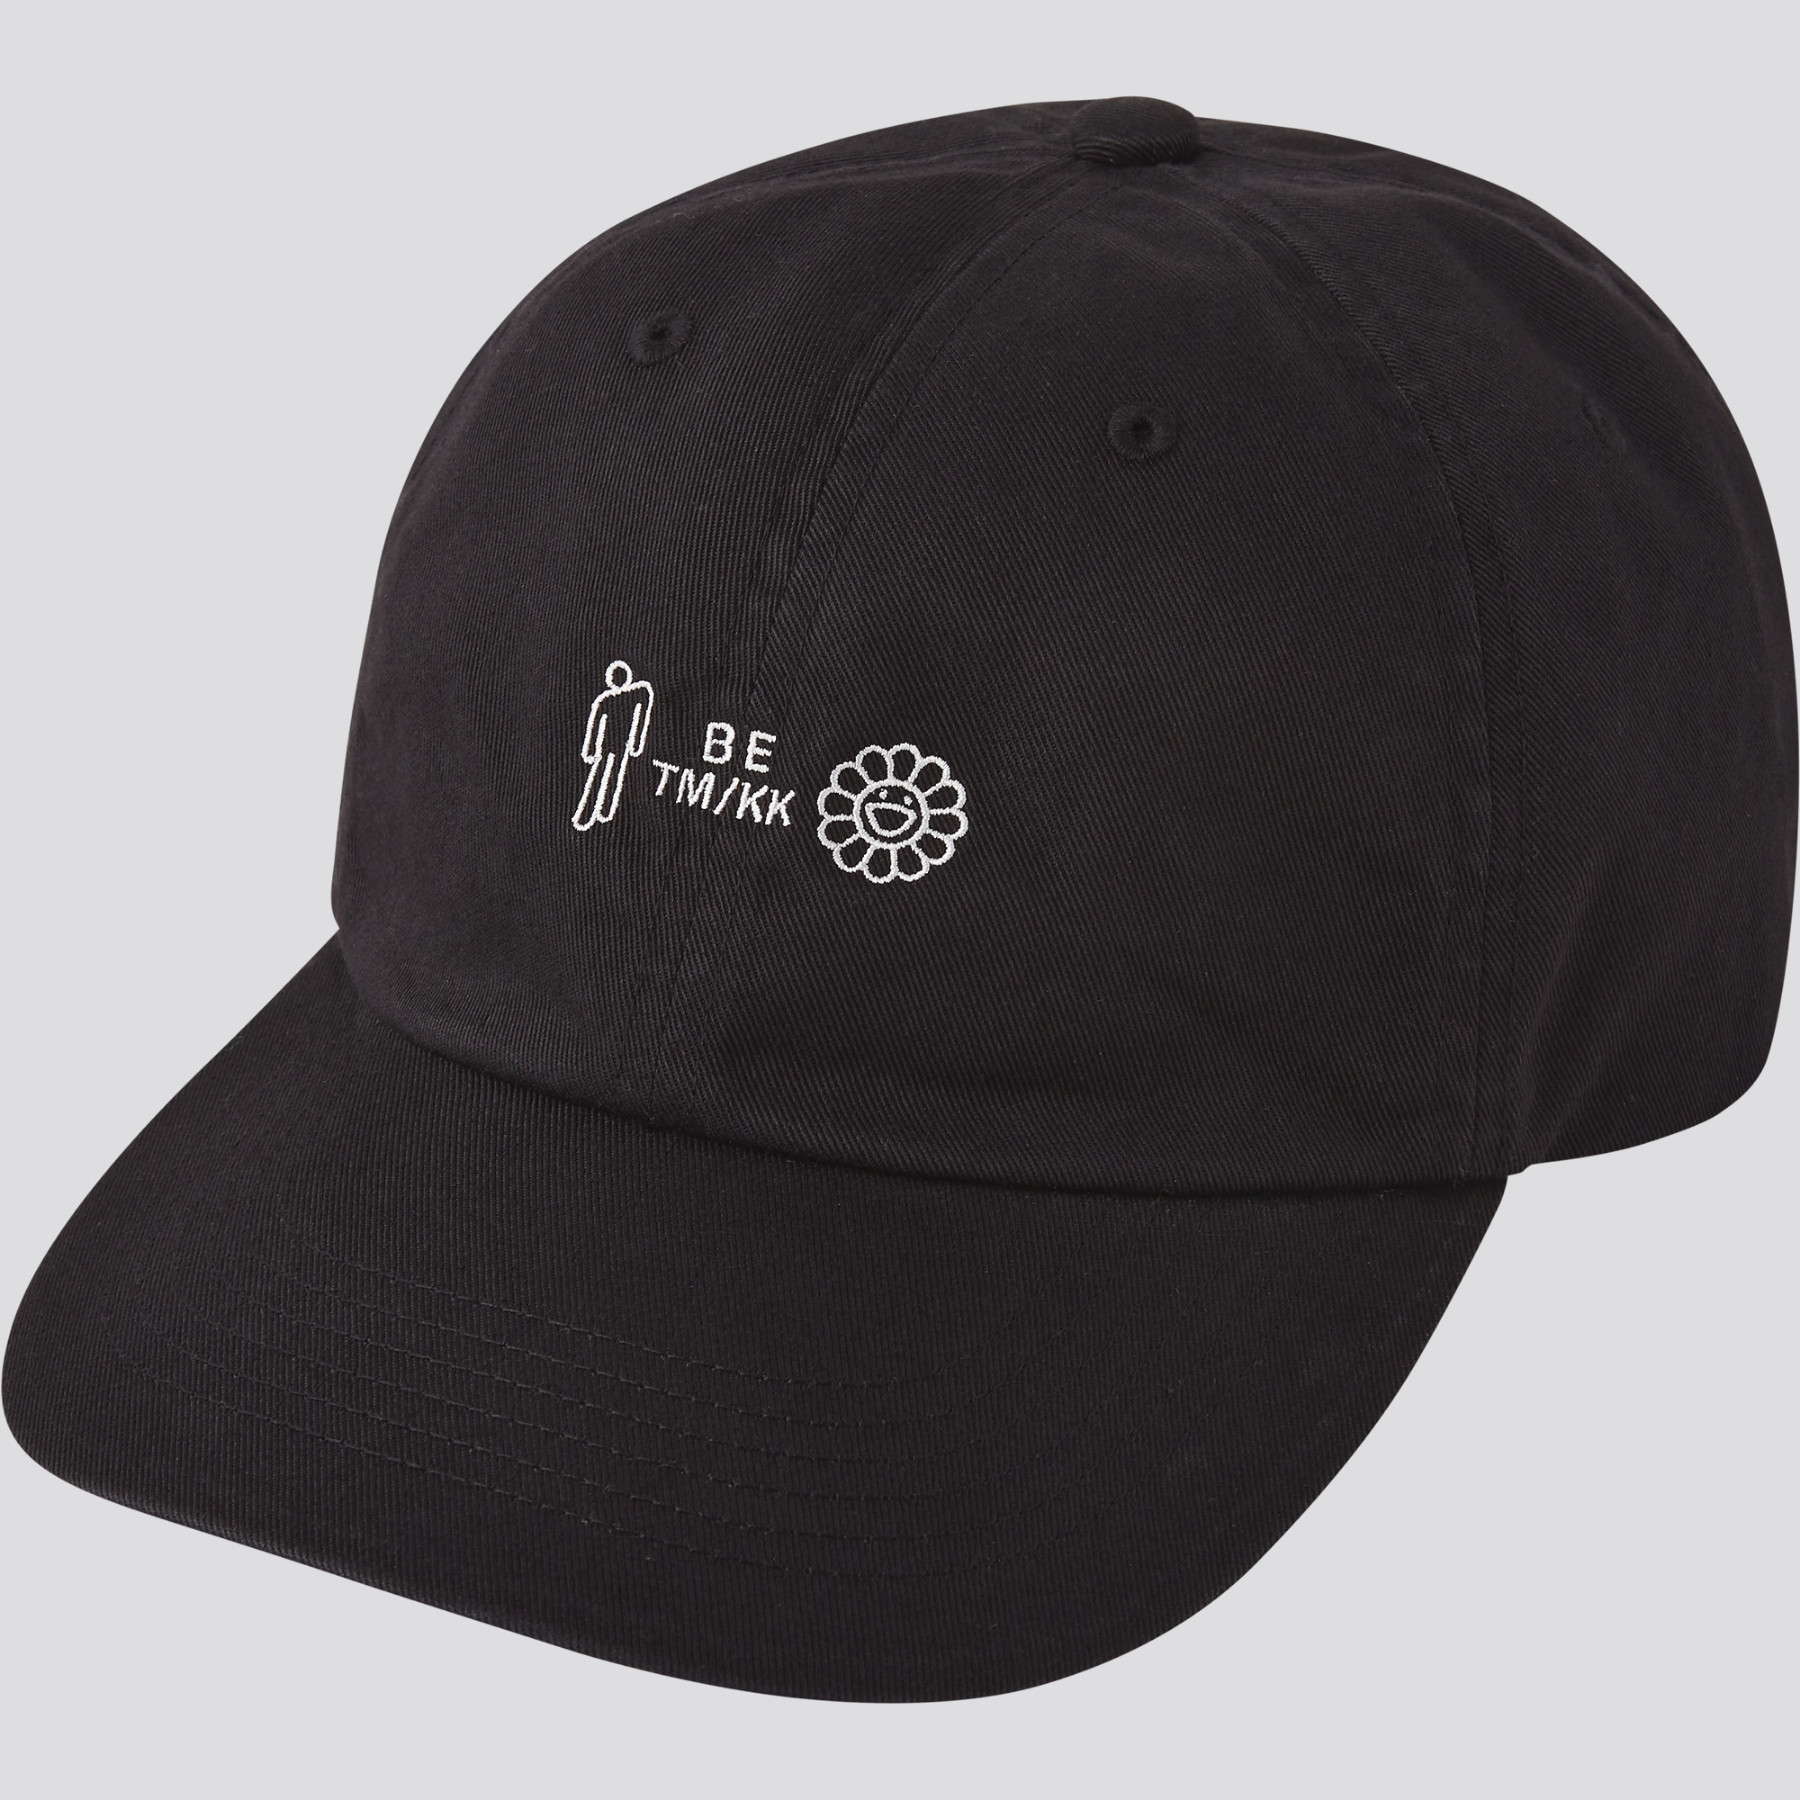 UNIQLO Billie Eilish Murakami Hat